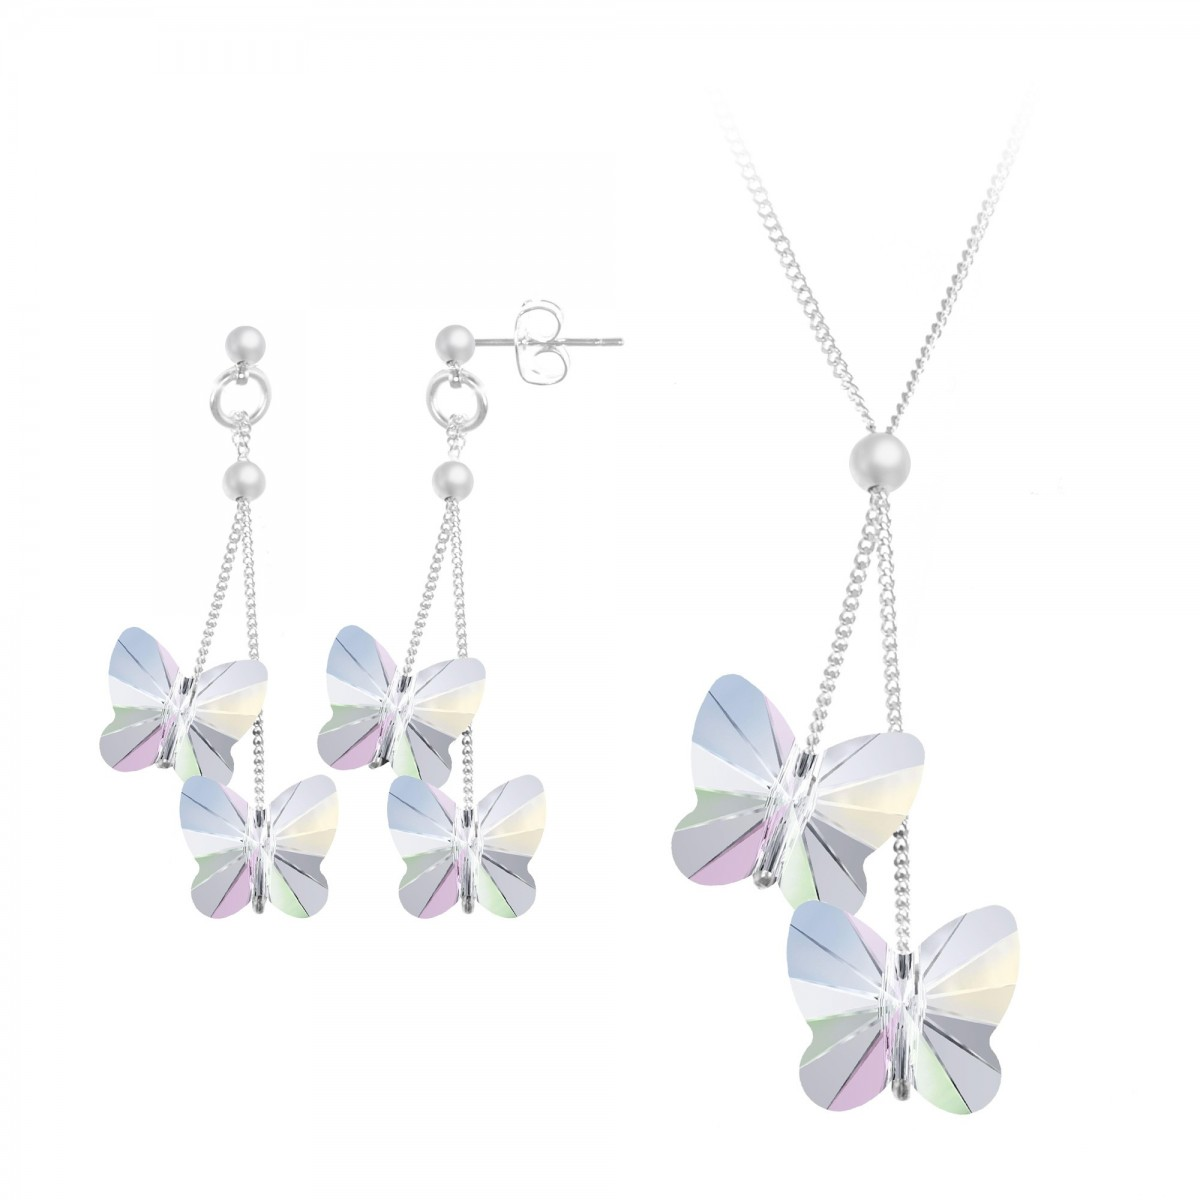 Parure collier et boucles d'oreilles papillons irisés So Charm made with Crystal from Swarovski